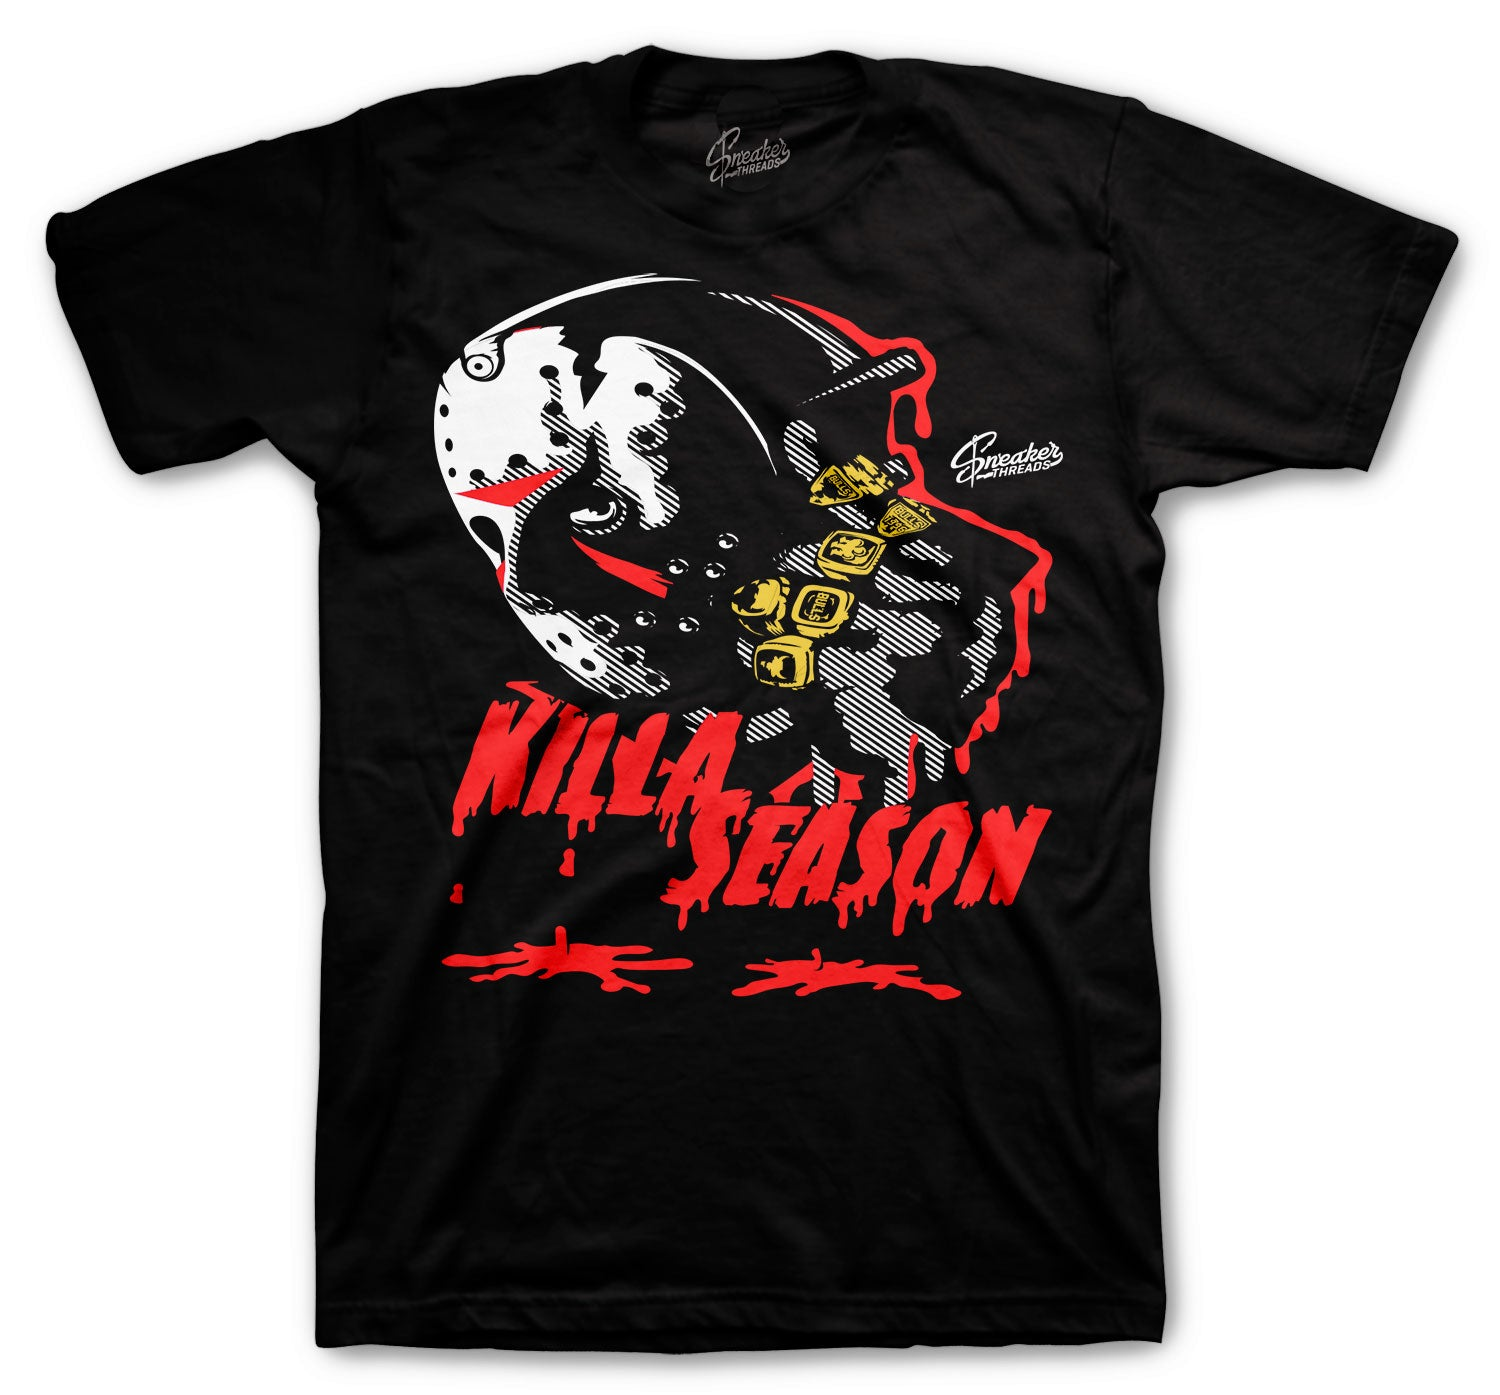 Jordan 4 Fire Red Shirt - Killa Season - Black